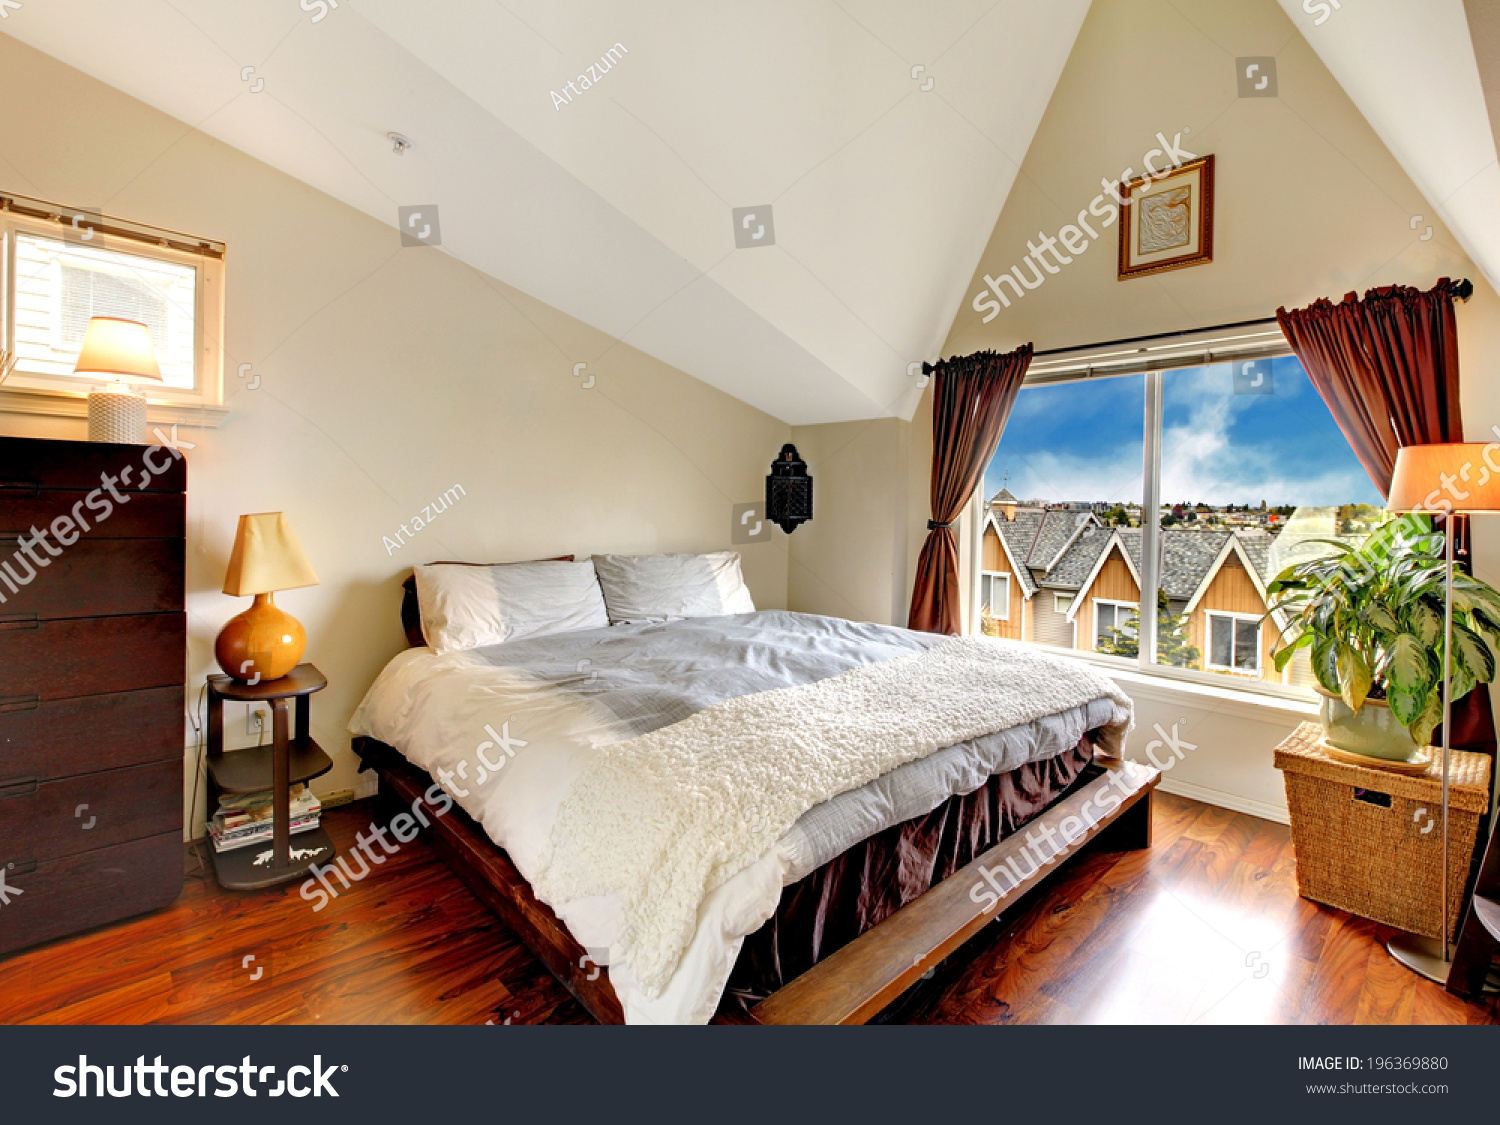 Nice Bedroom With Vaulted Ceiling, Hardwood Floor And ...